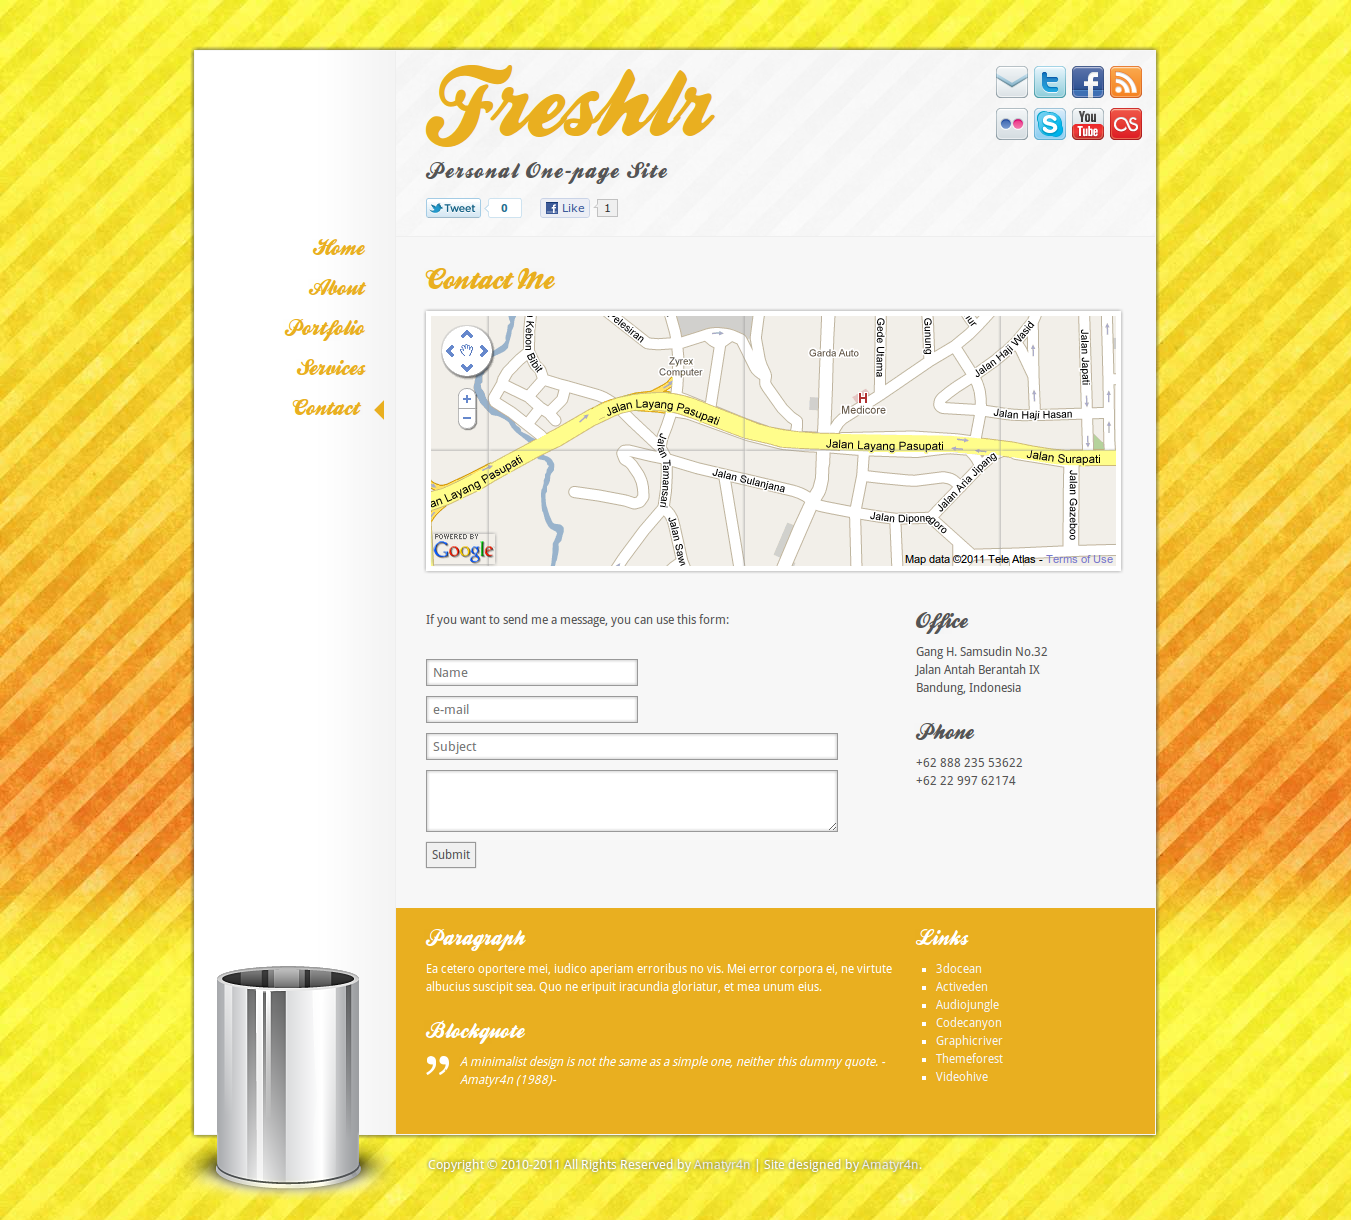 Freshlr Personal One-Page Site Template